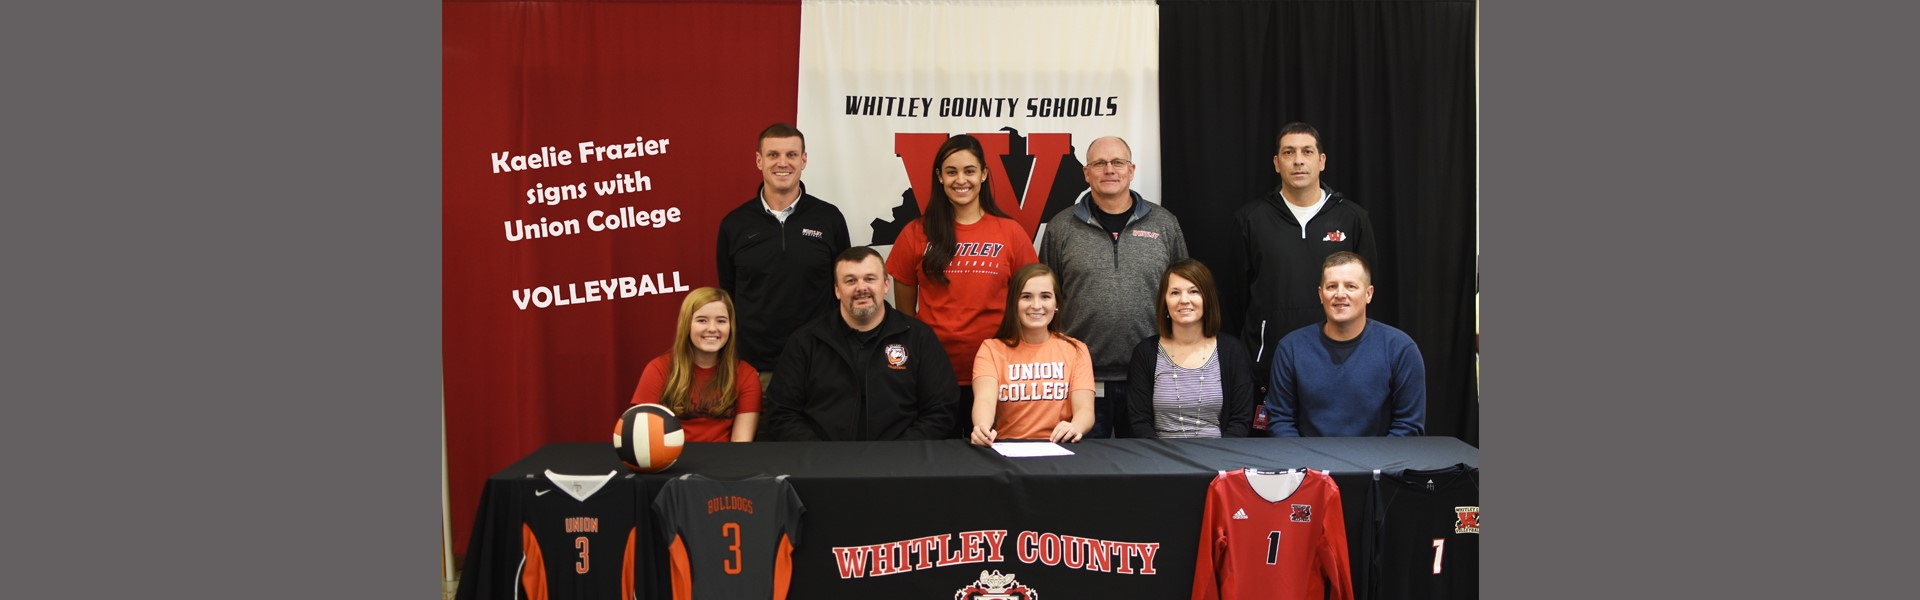 Kaelie Frazier signs with Union College